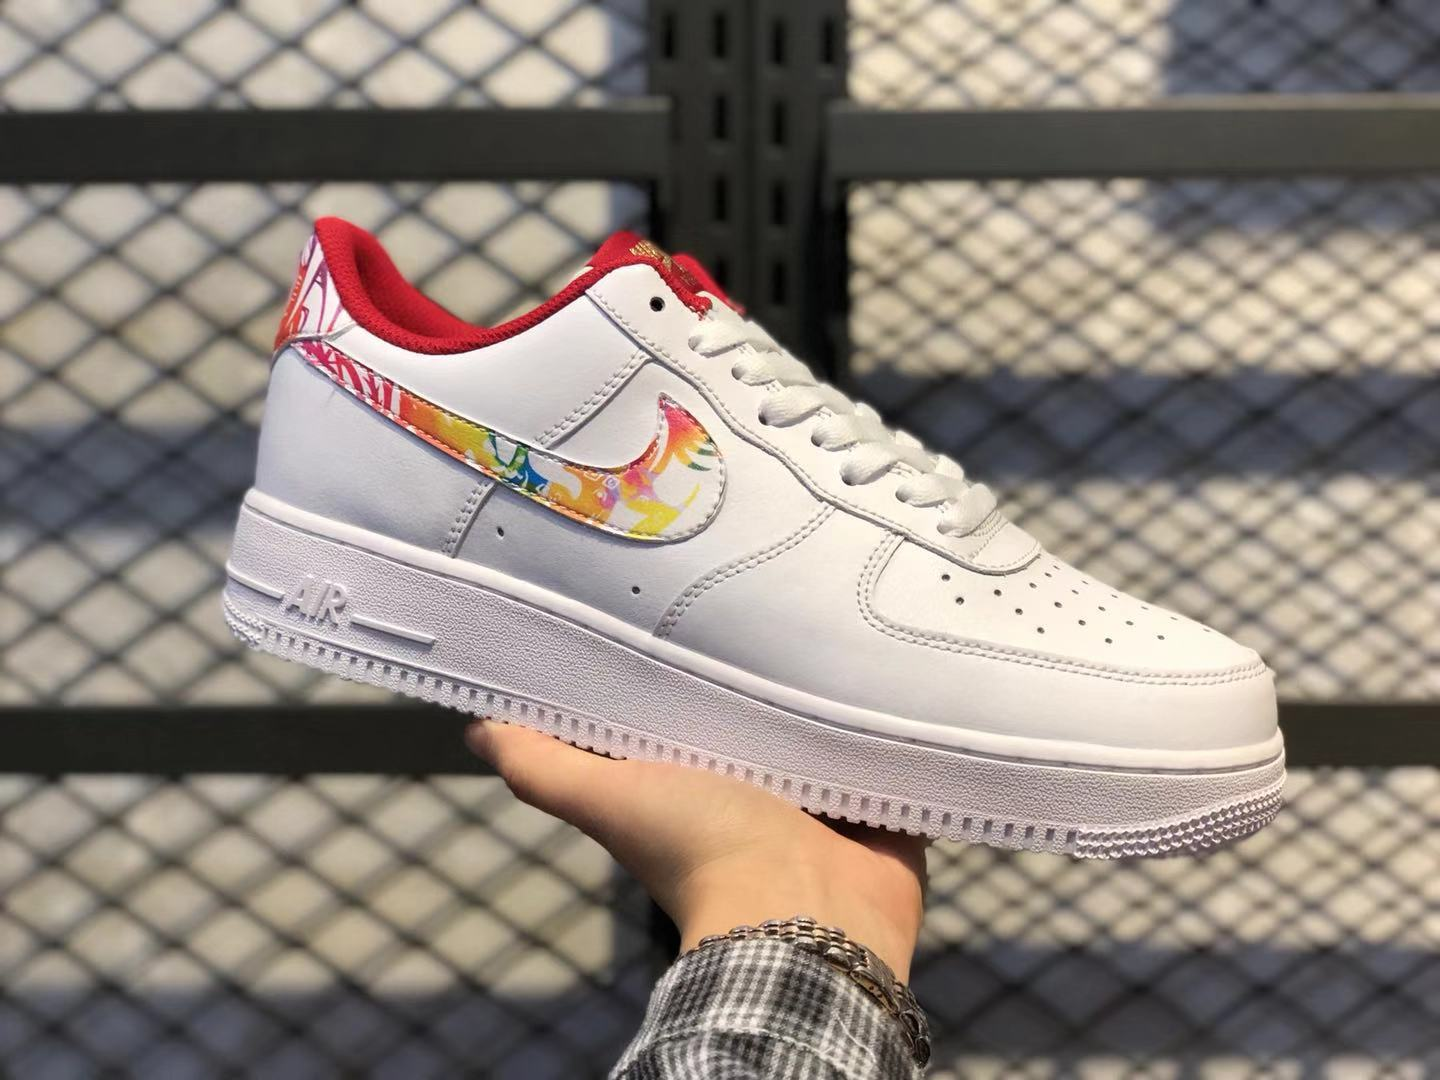 Nike Air Force 1 Low Black/Multi-Color-Red Life Classic Shoes Cheap Price